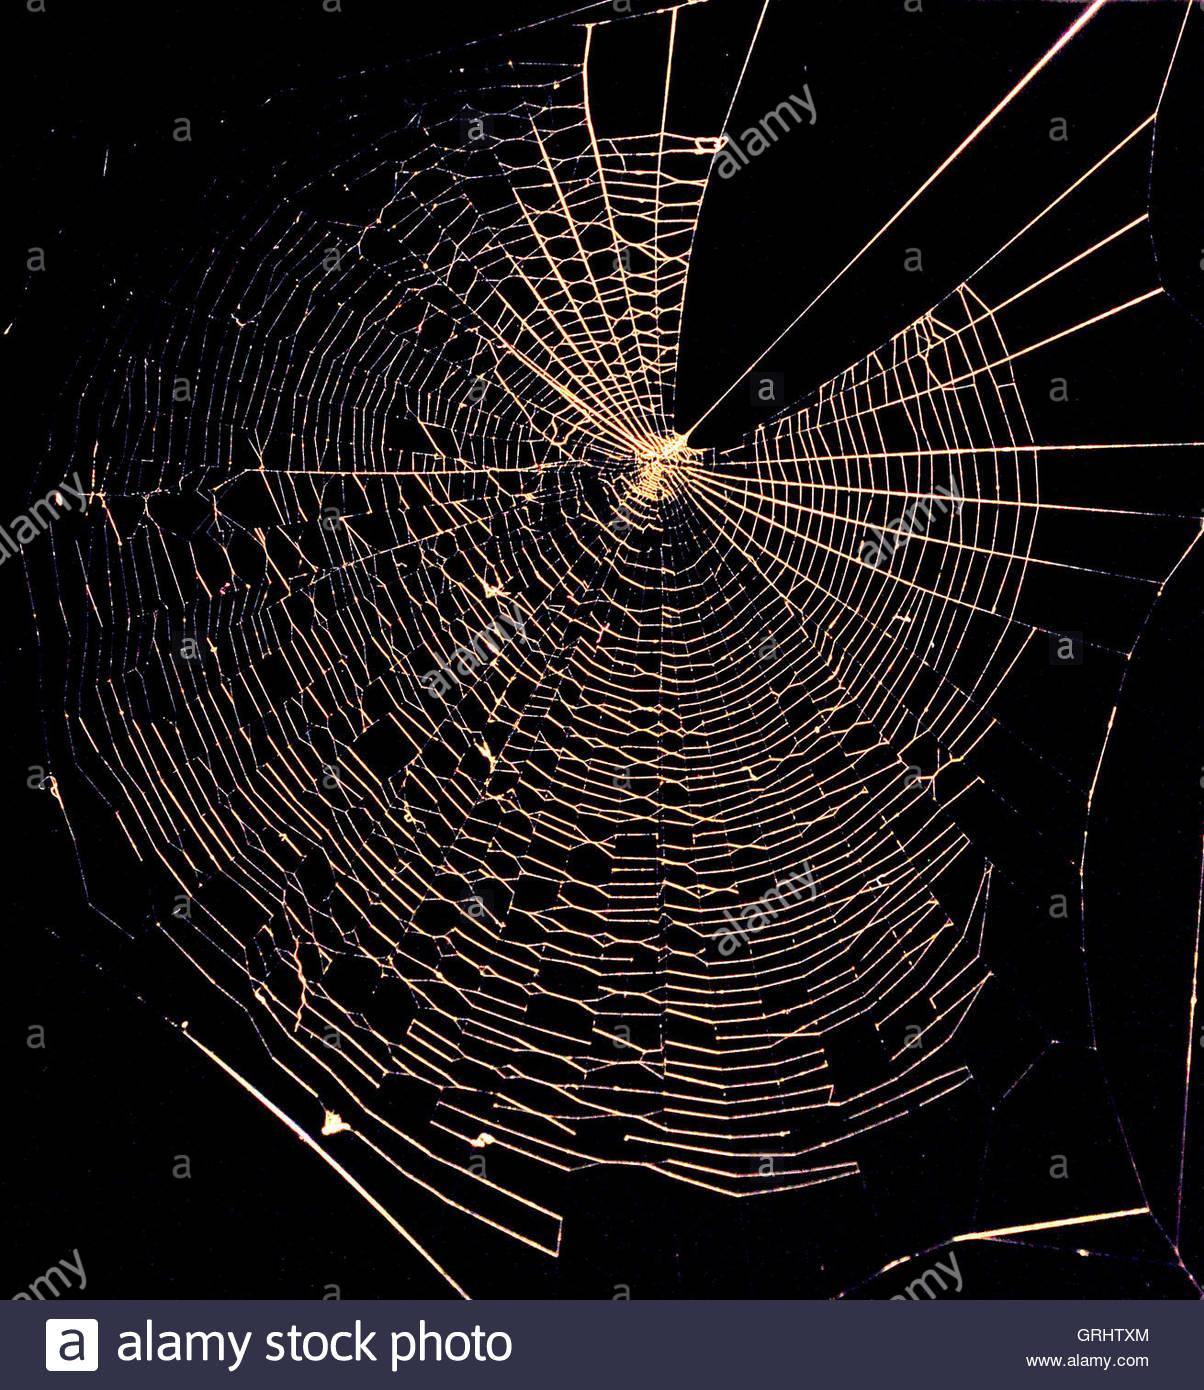 A spider's web illuminated by a spotlight - Stock Image